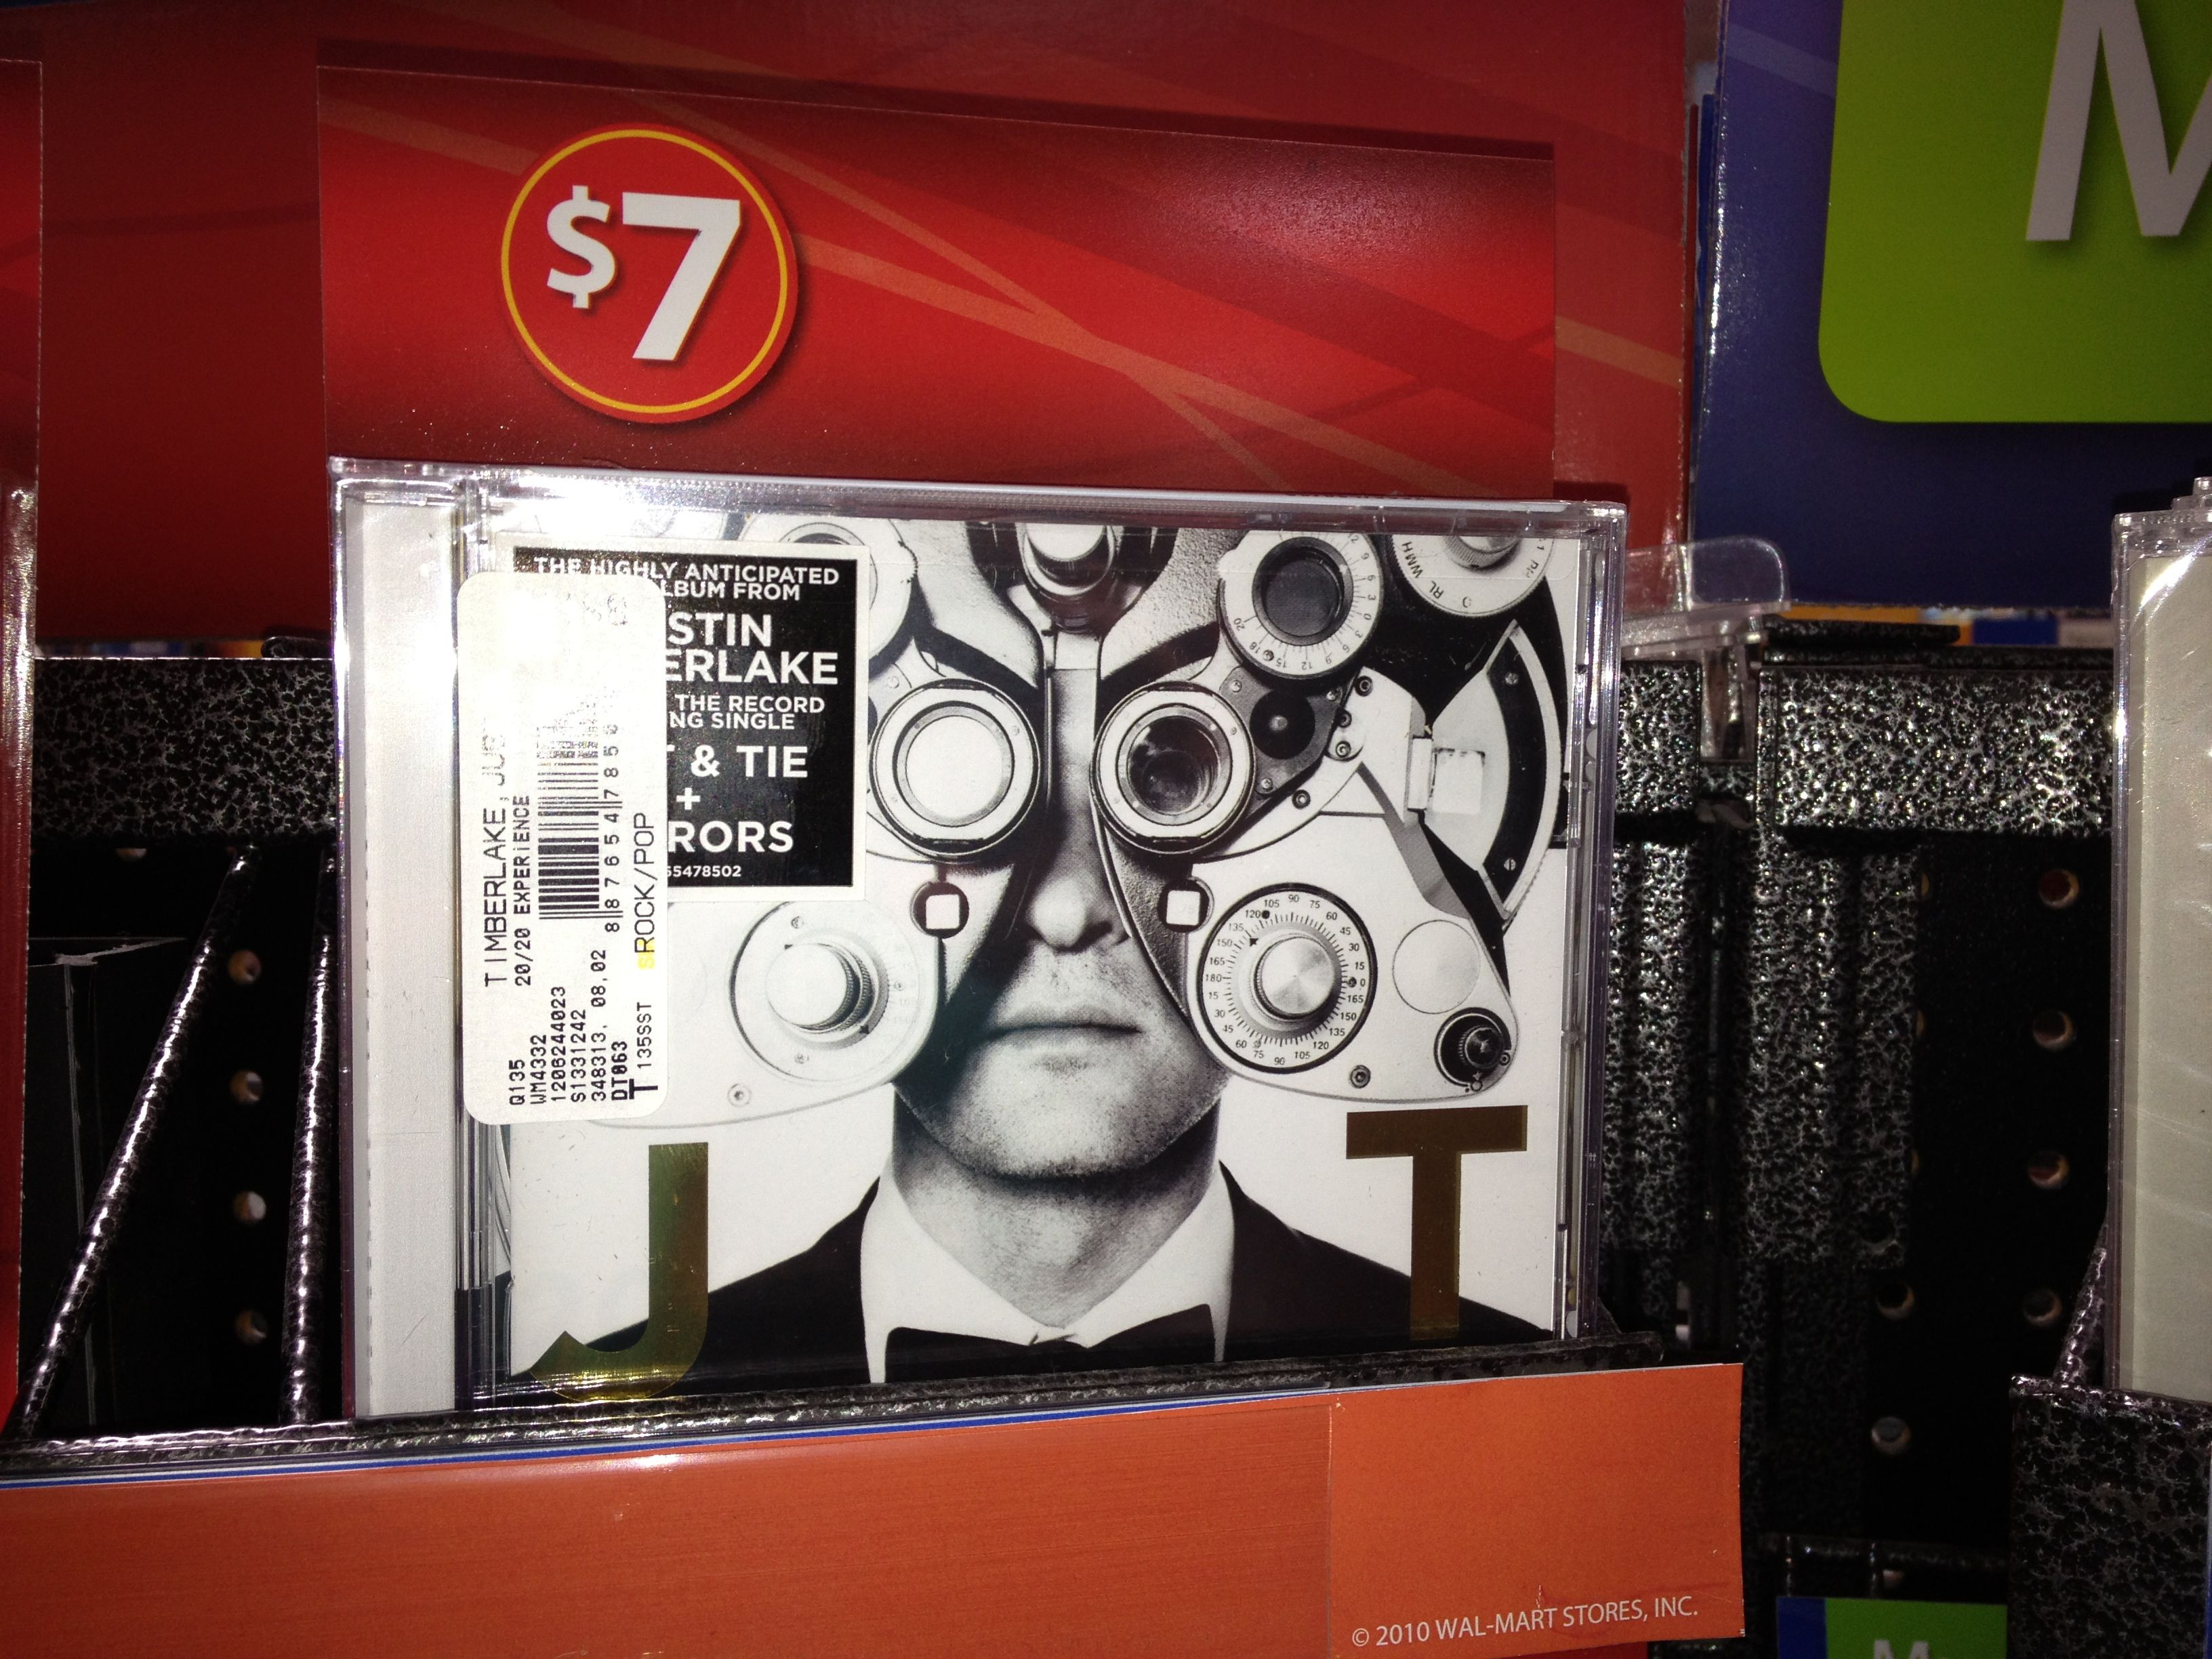 Buy Justin Timberlake's The 20/20 Experience CD For $7 At Walmart #JT2020